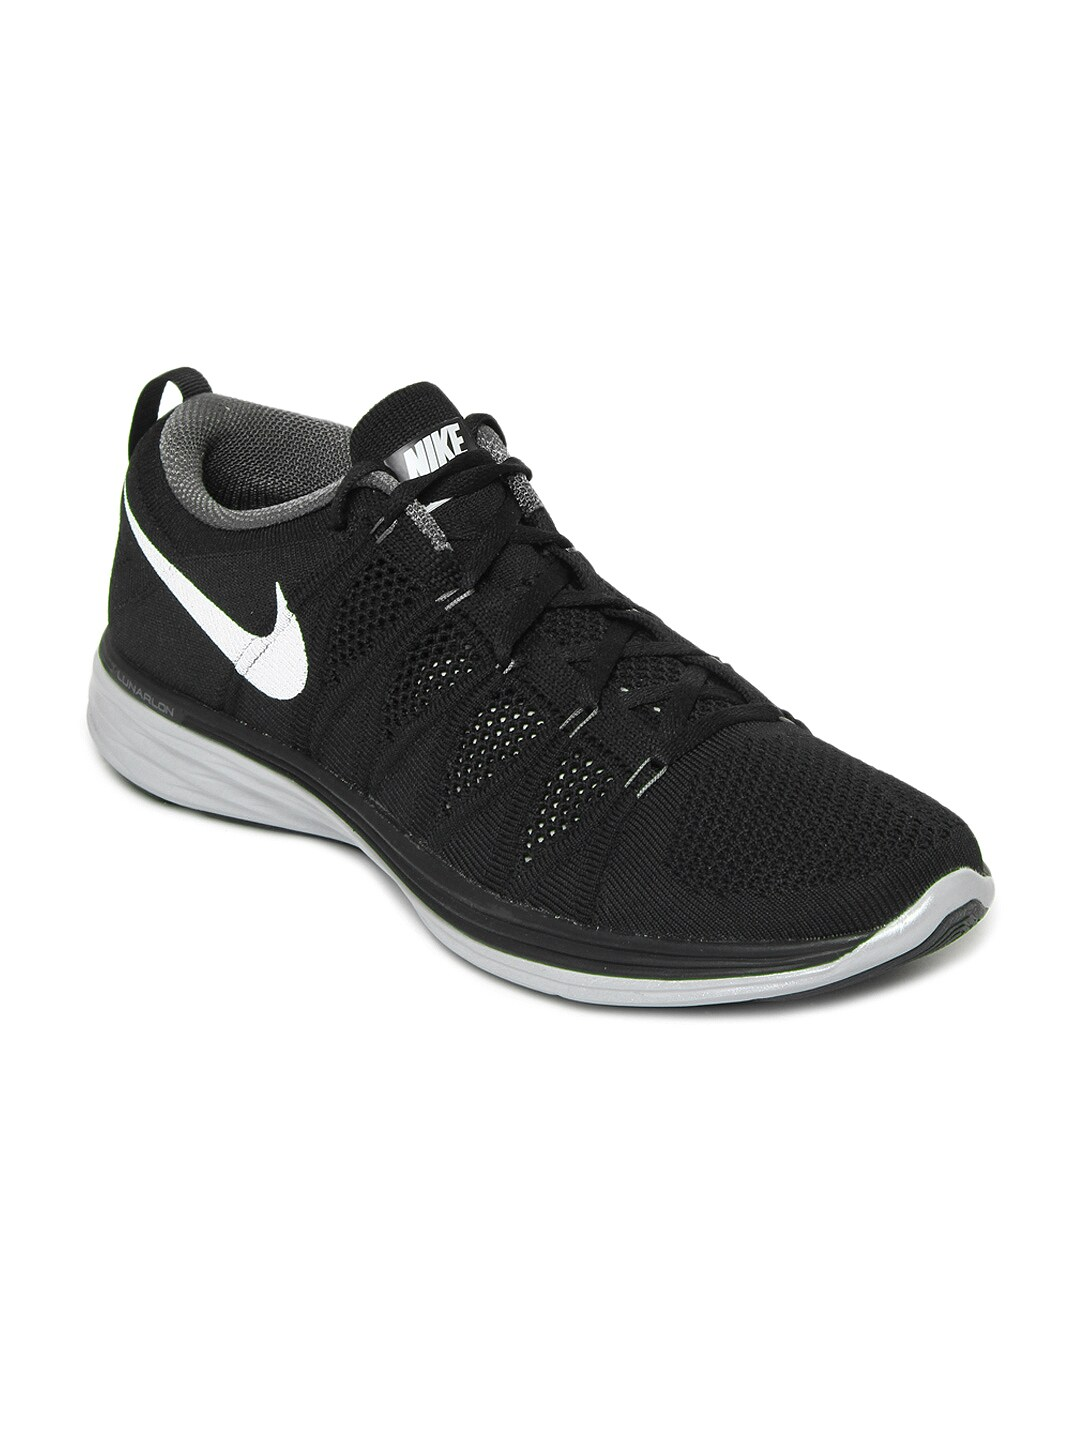 quality design e9ec2 80463 Nike 620465-011 Men Black Flyknit Lunar 2 Running Shoes- Price in India